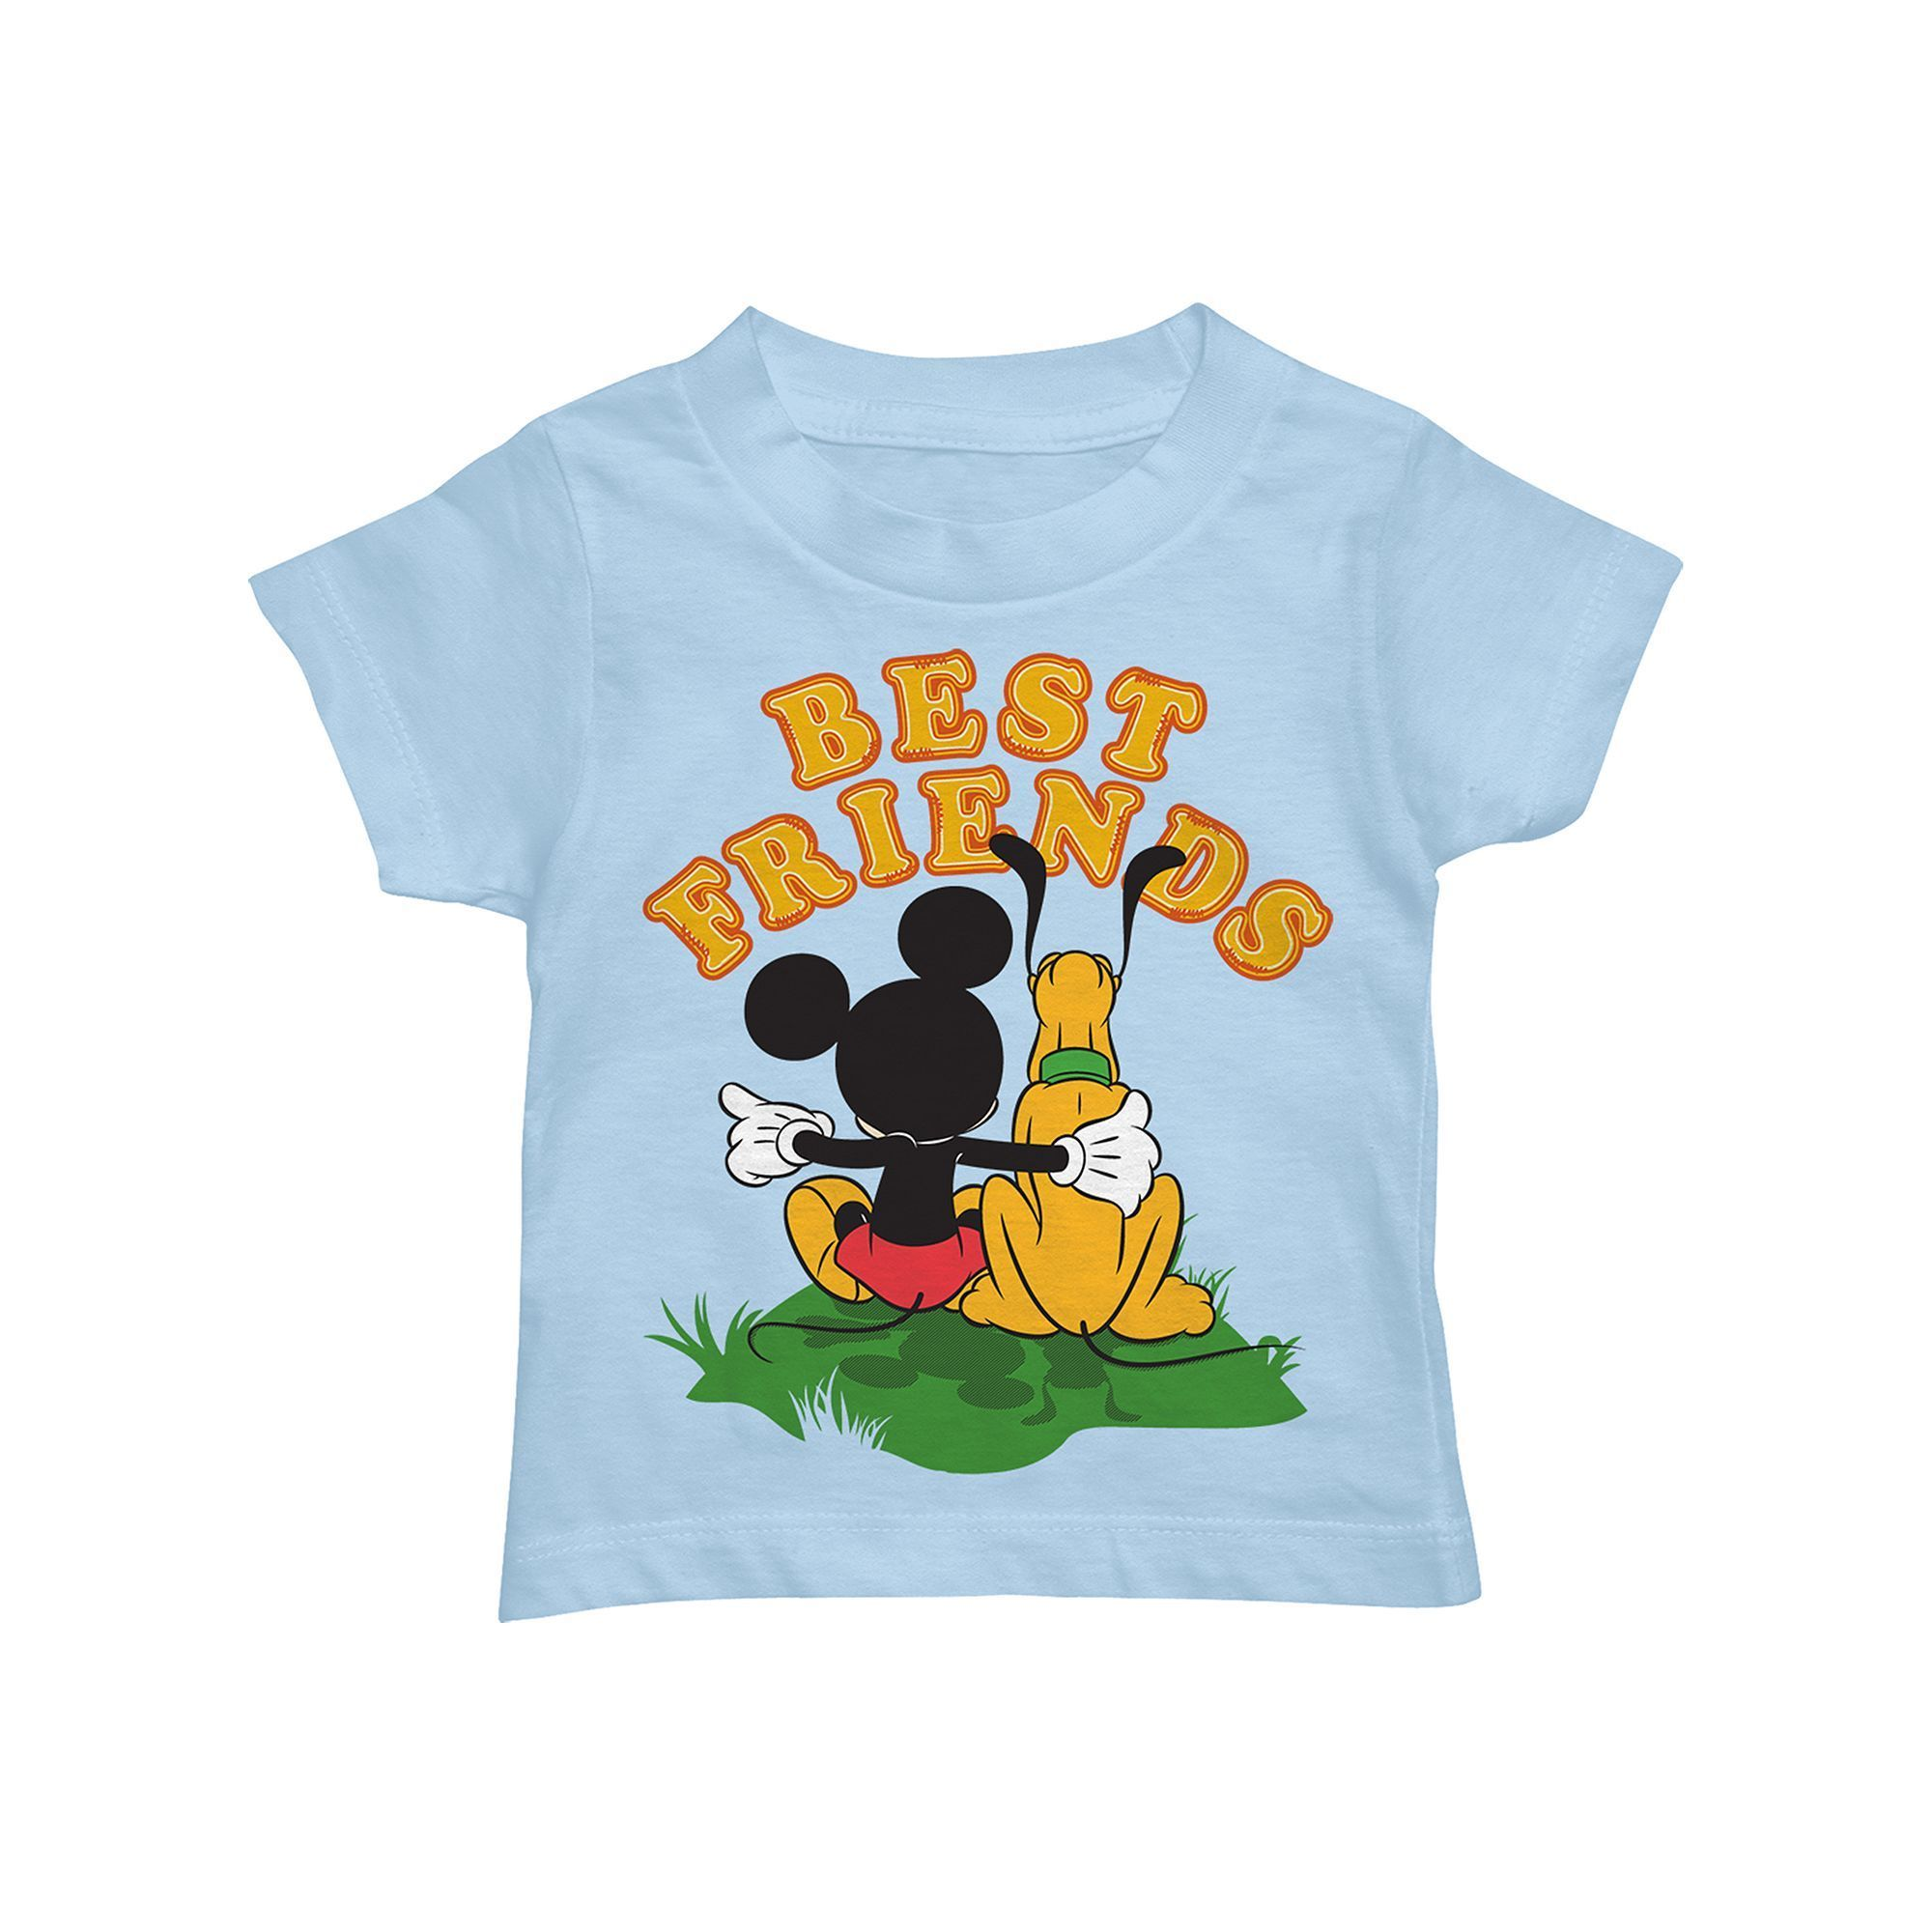 Disney Mickey Mouse Goofy Pluto and Donald Duck Tee T-Shirt Toddler Boy 3T 5T